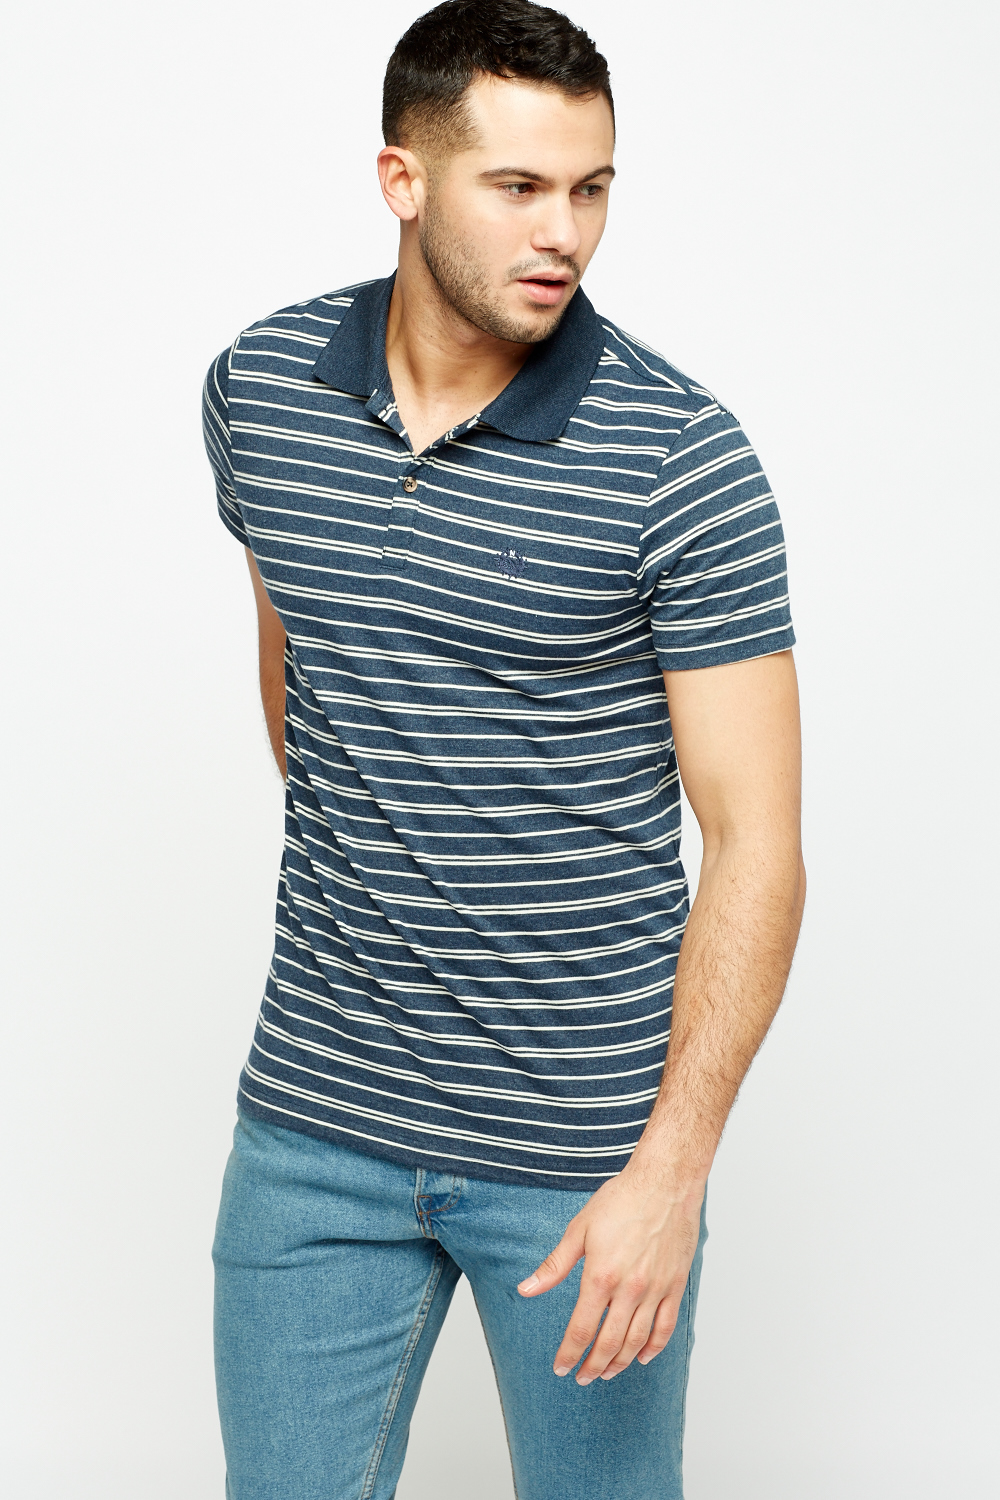 Striped Polo T-Shirt - Just £5